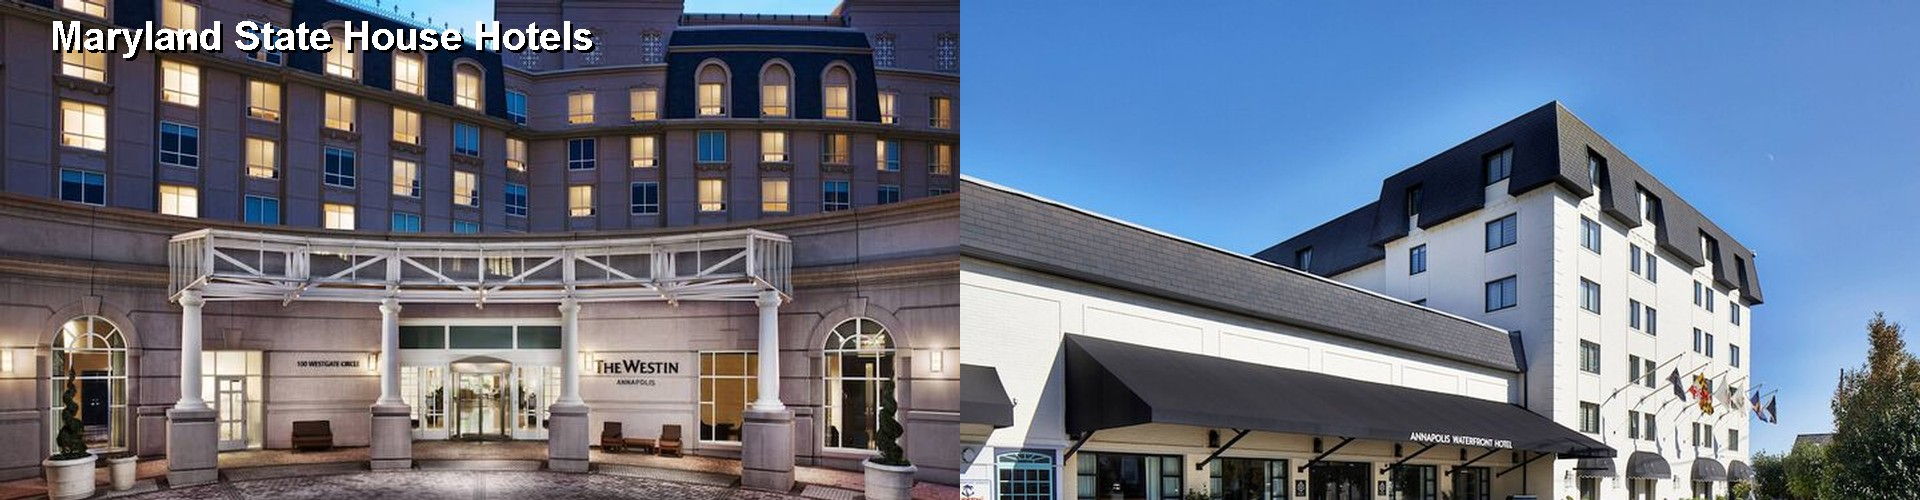 5 Best Hotels near Maryland State House